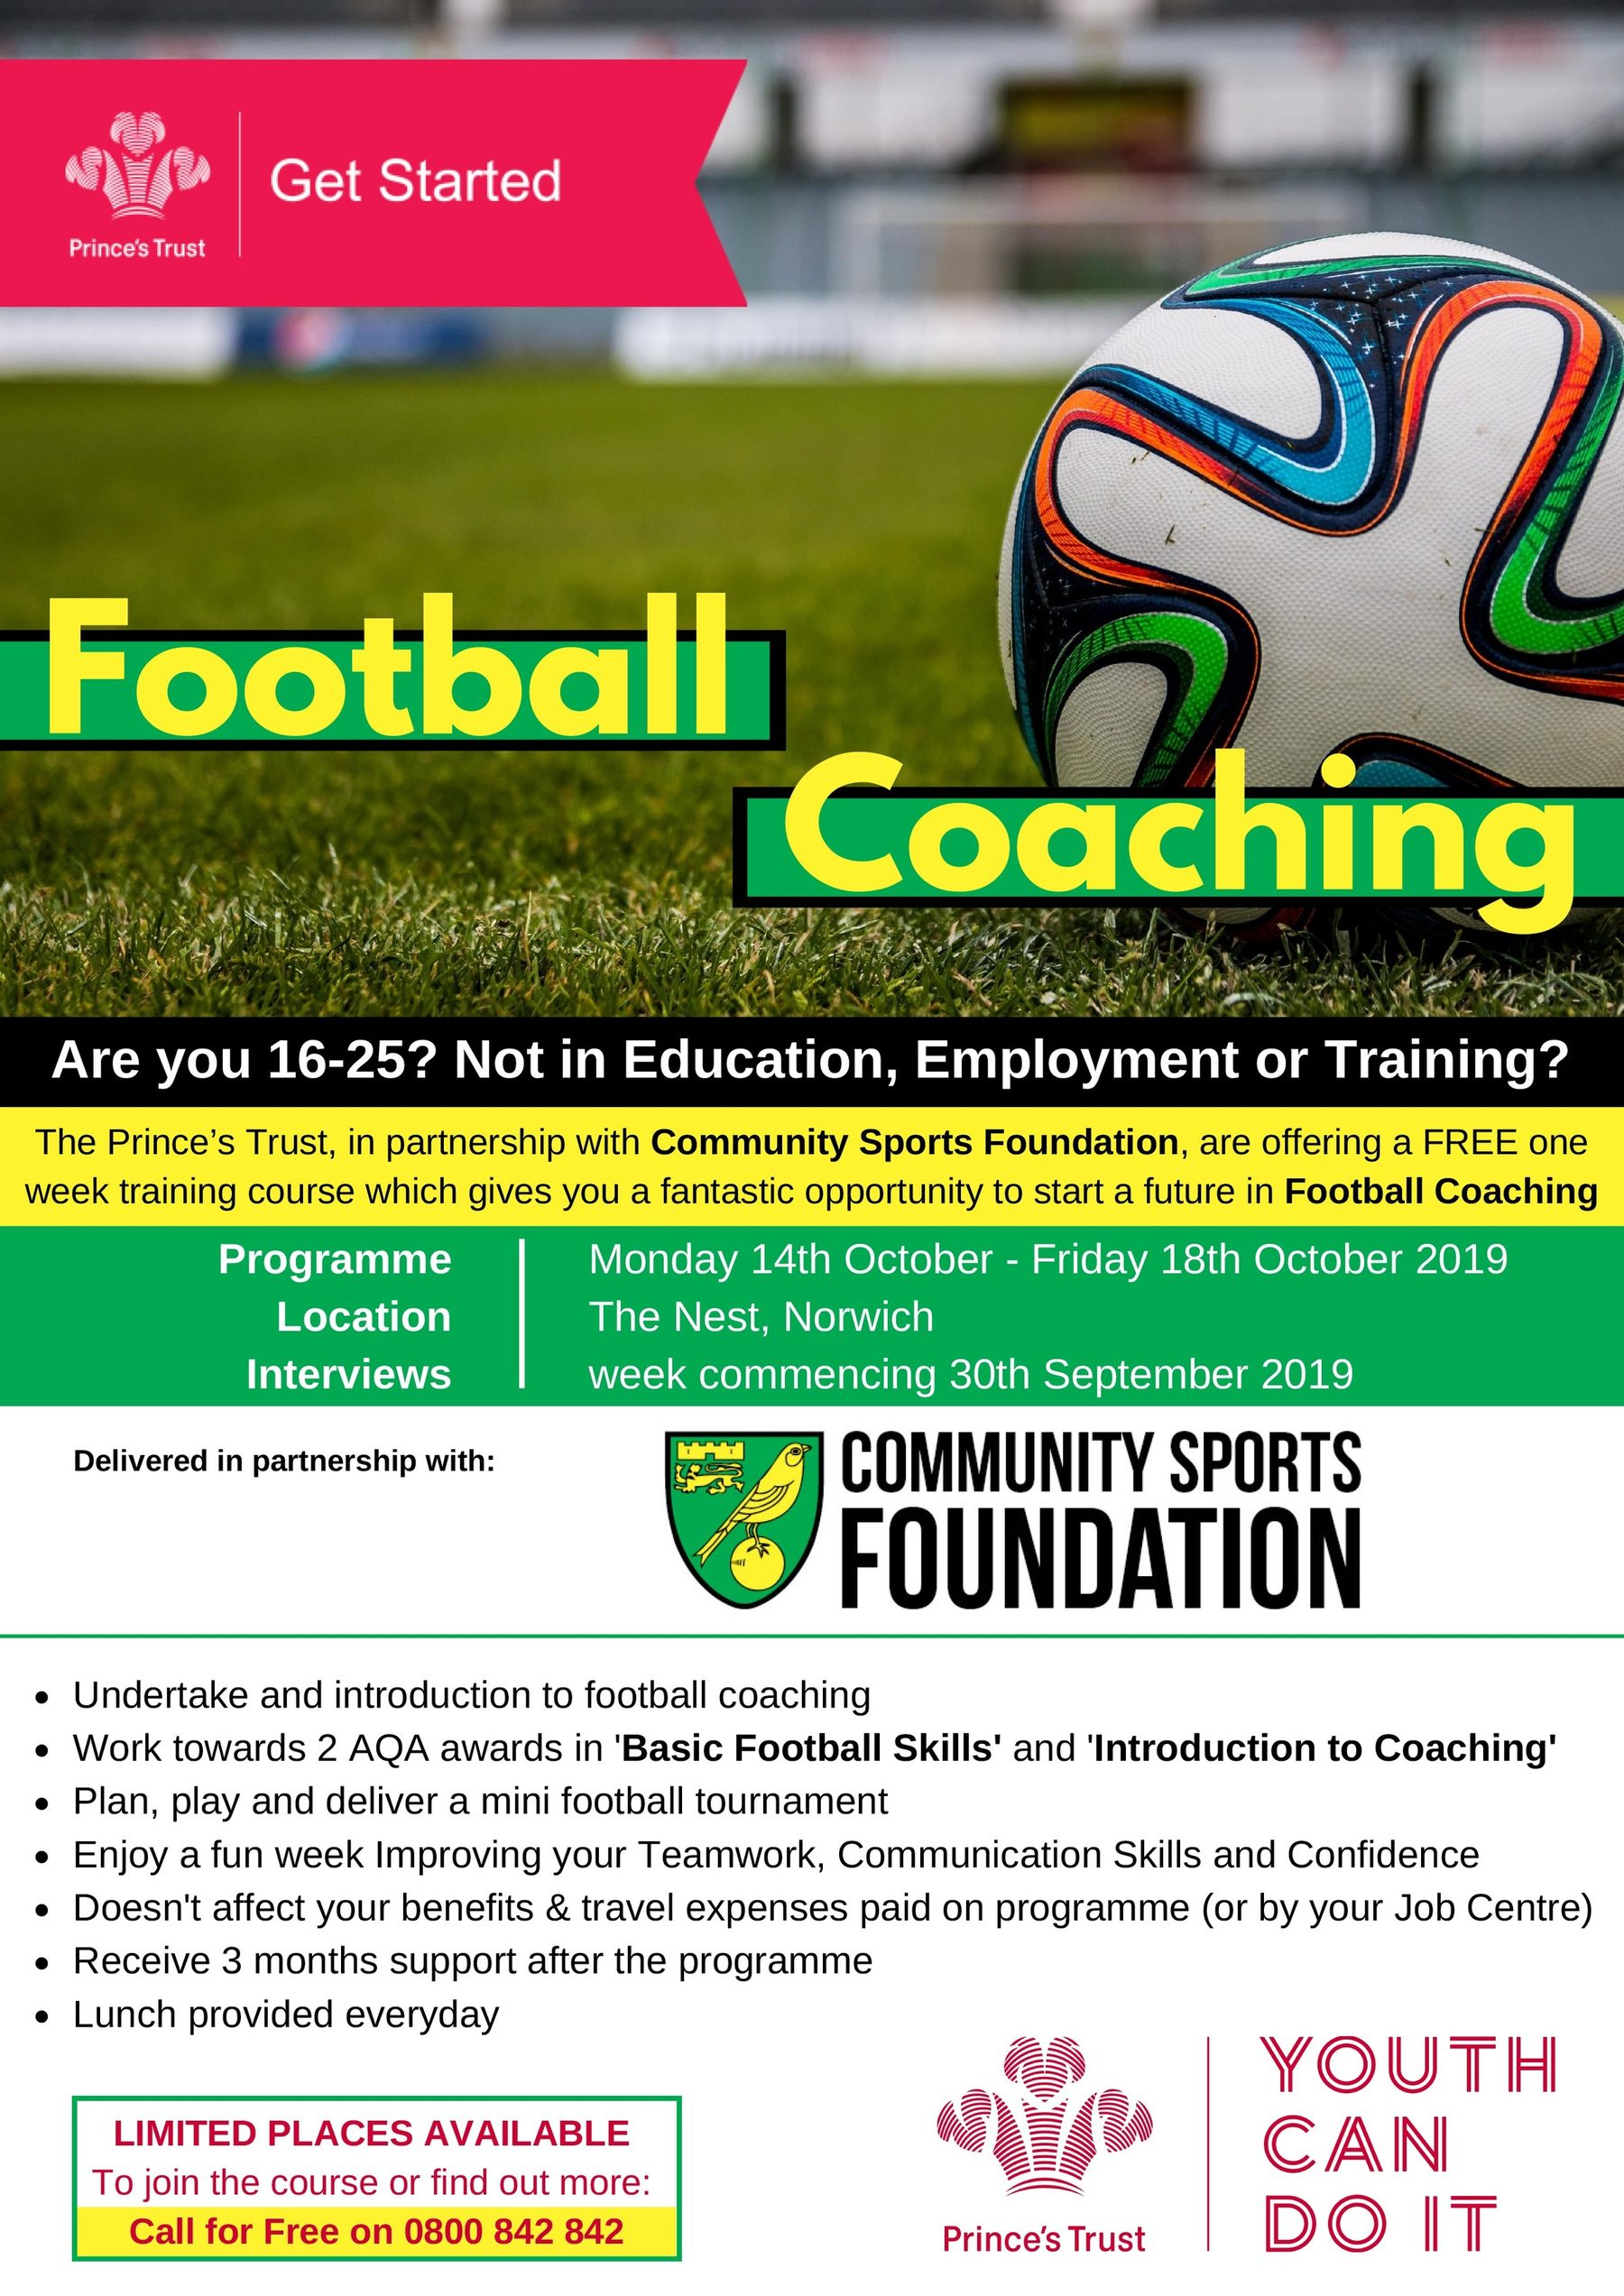 Prince's Trust : Get Started with Football Coaching